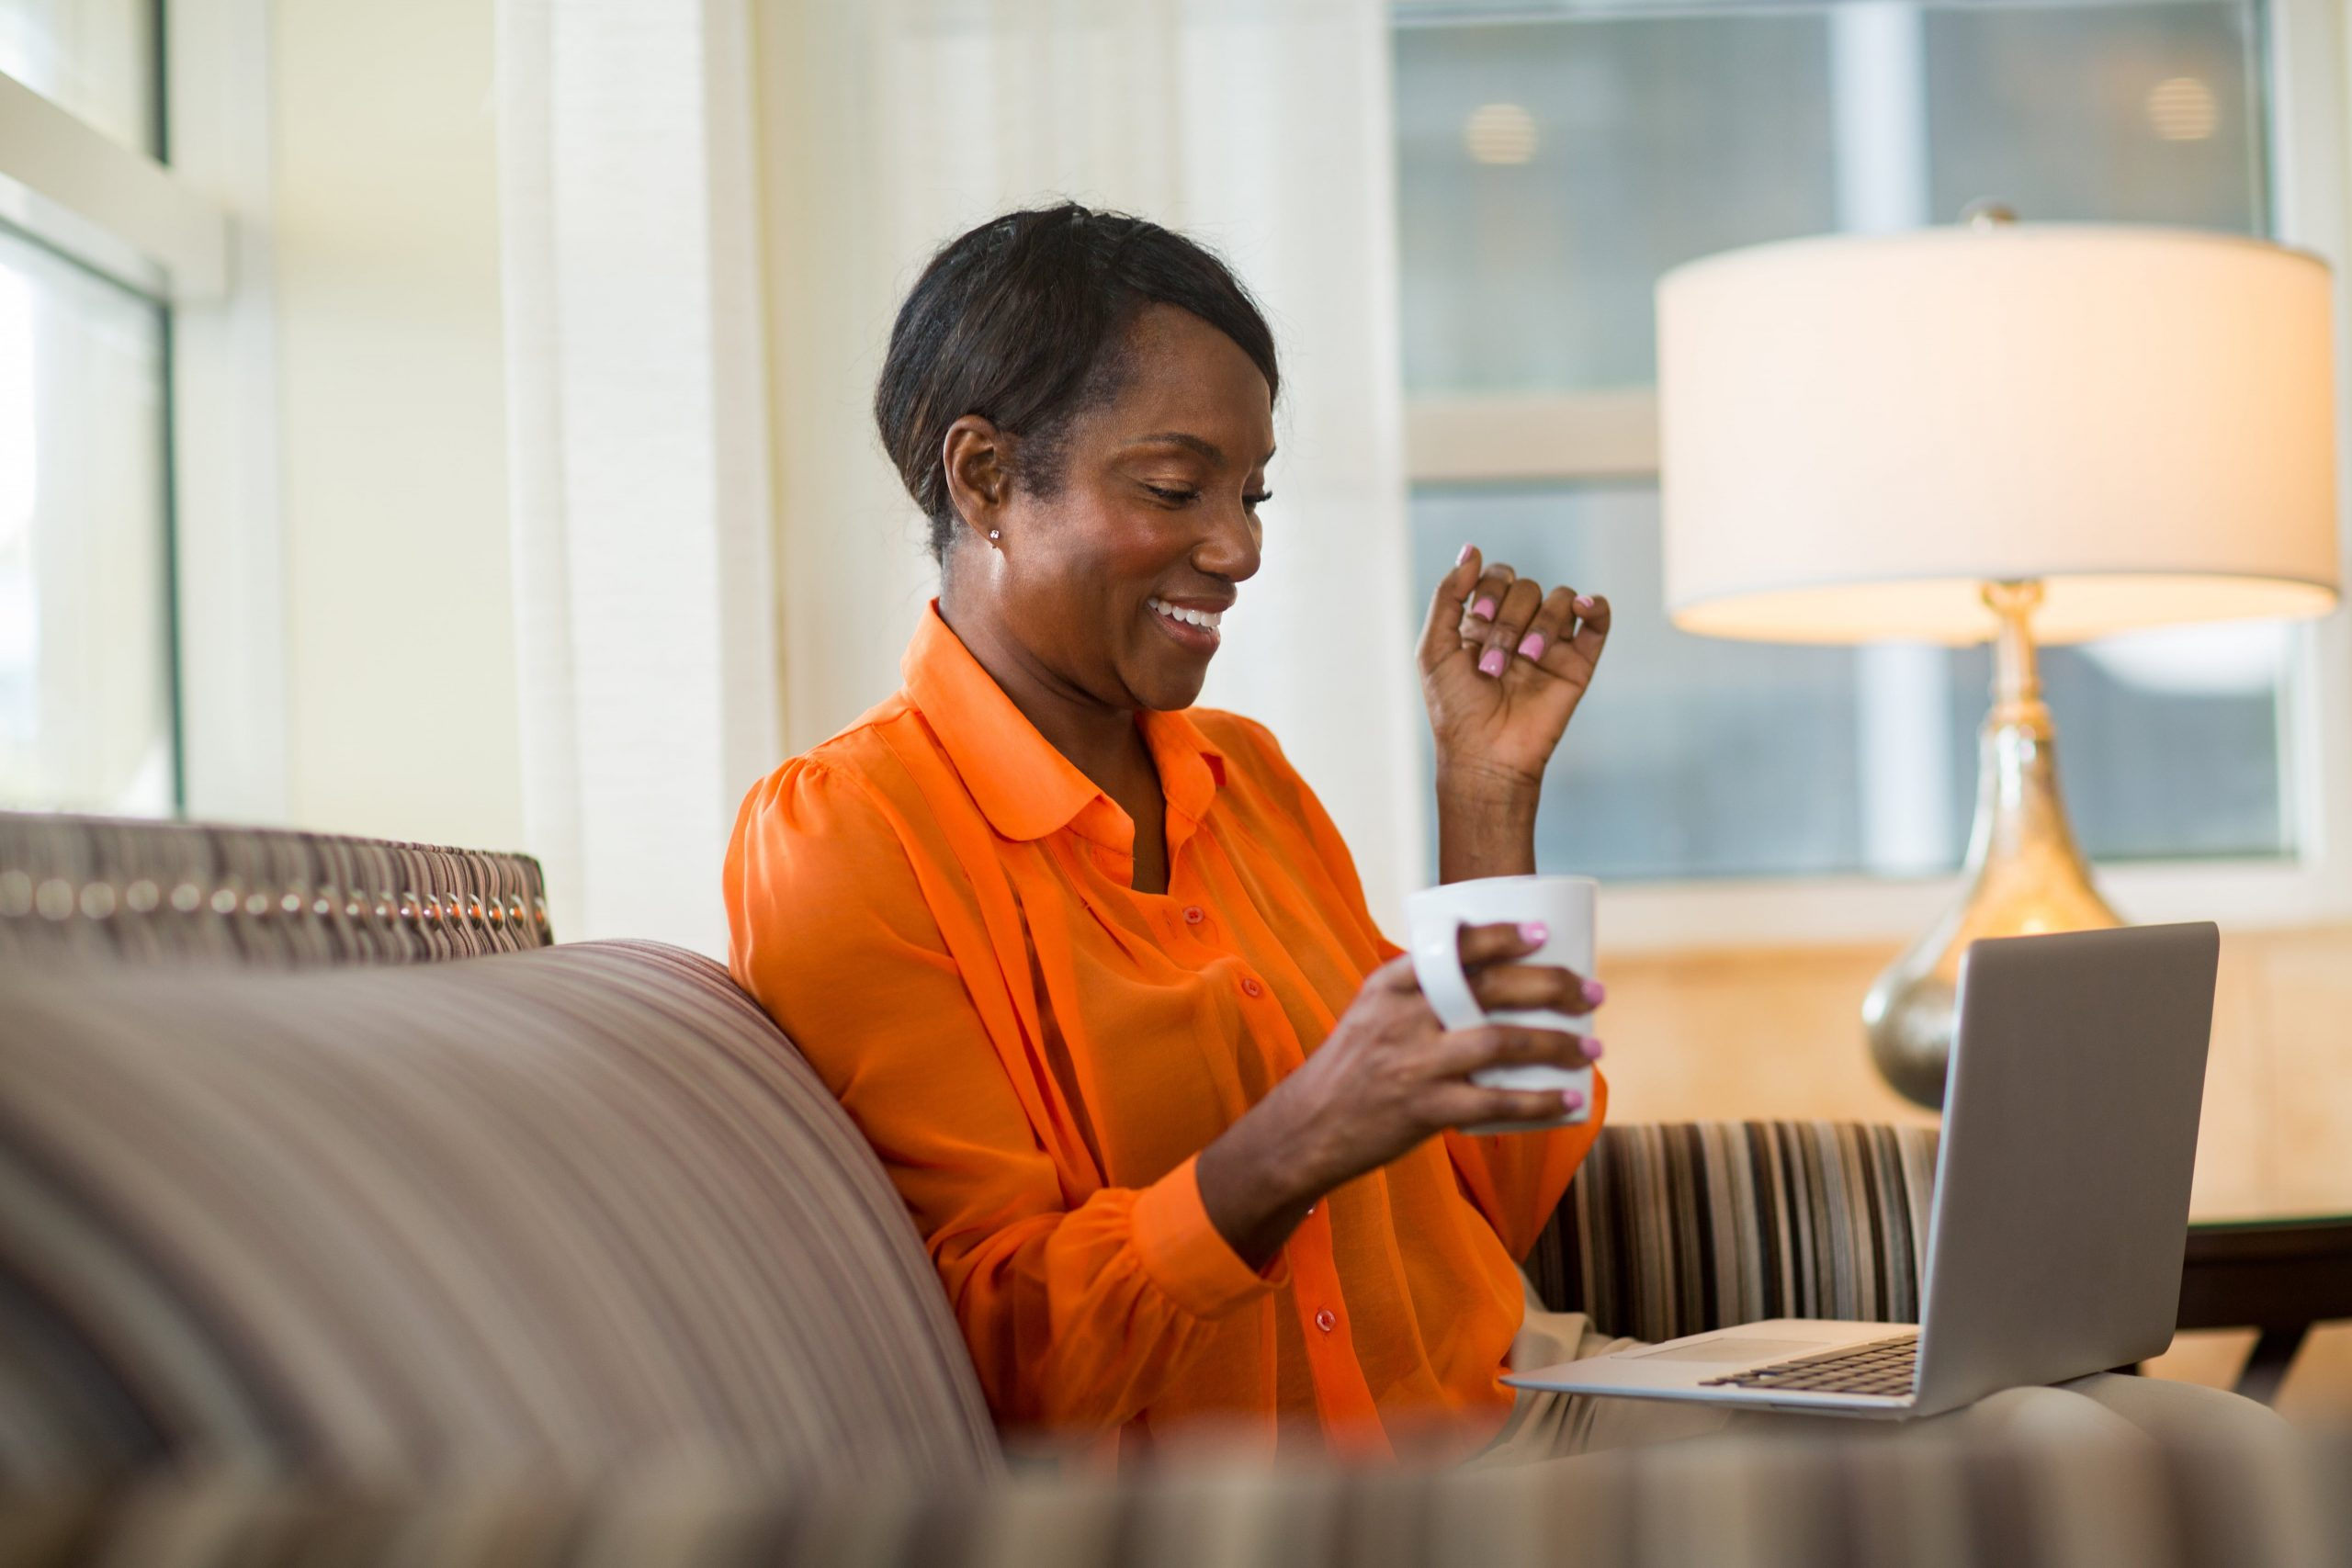 blog image of woman searching for apartment using online rental portal